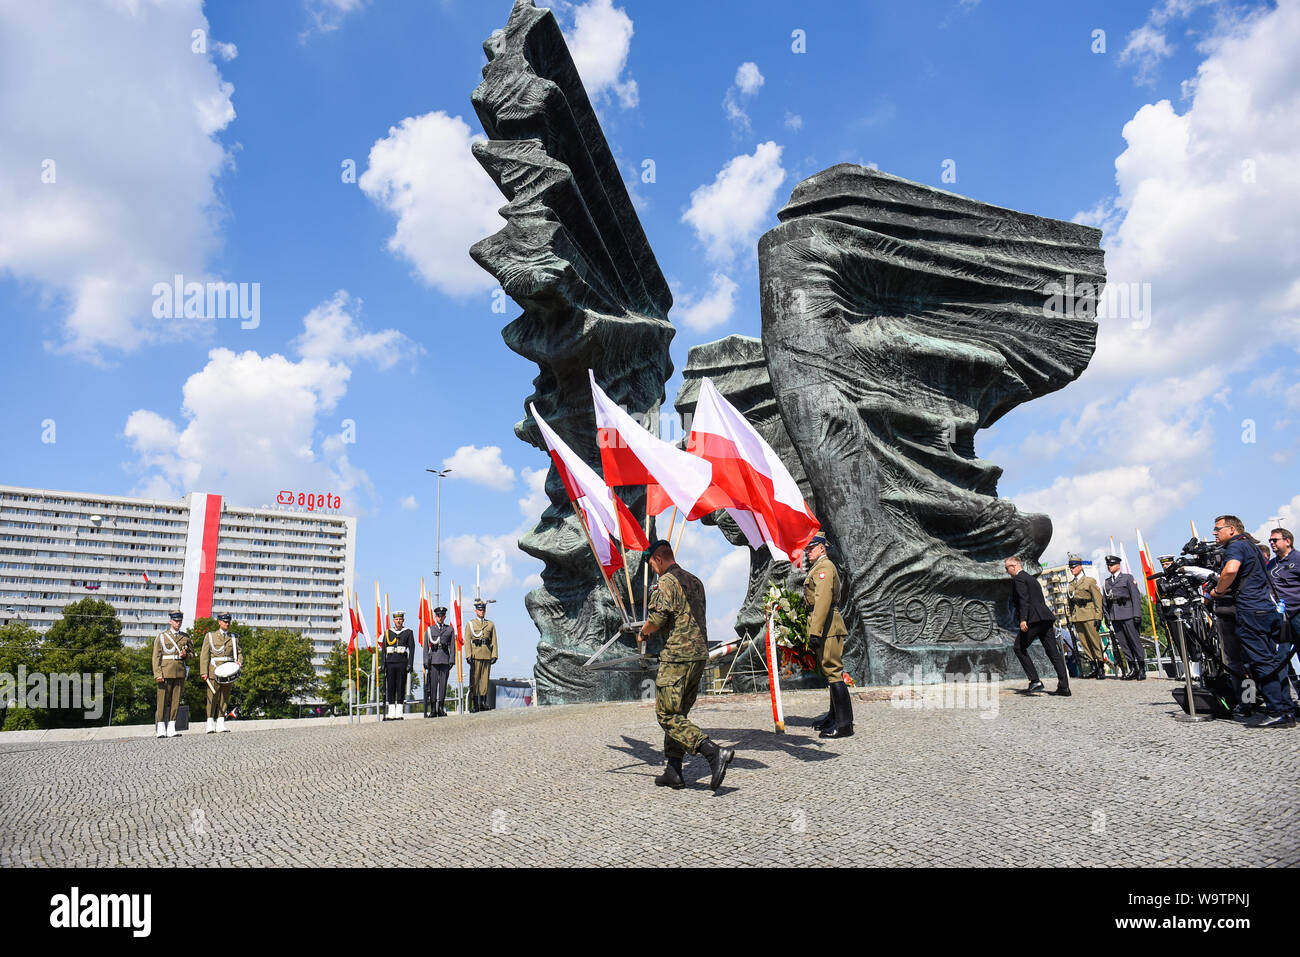 President of Poland, Andrzej Duda, lays  wreath at the Monument of Silesia Insurgents during the event held in Katowice.On the occasion of the Polish Army Day, the 99th anniversary of the Battle of Warsaw and the 100th anniversary of the outbreak of the First Silesian Uprising, for the first time official celebrations took place out of the capital, Warsaw. Stock Photo